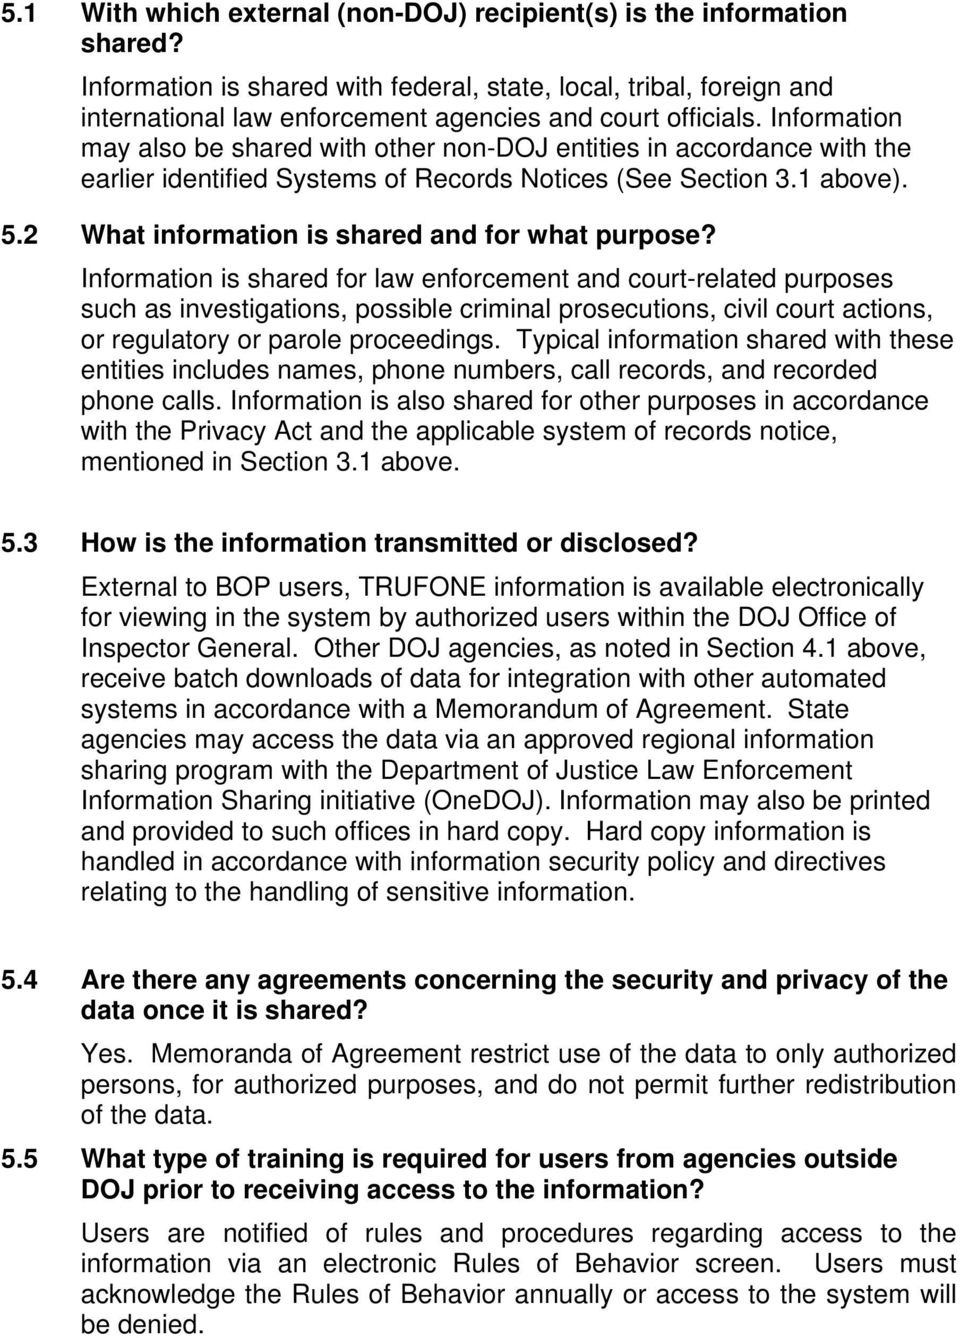 Information may also be shared with other non-doj entities in accordance with the earlier identified Systems of Records Notices (See Section 3.1 above). 5.